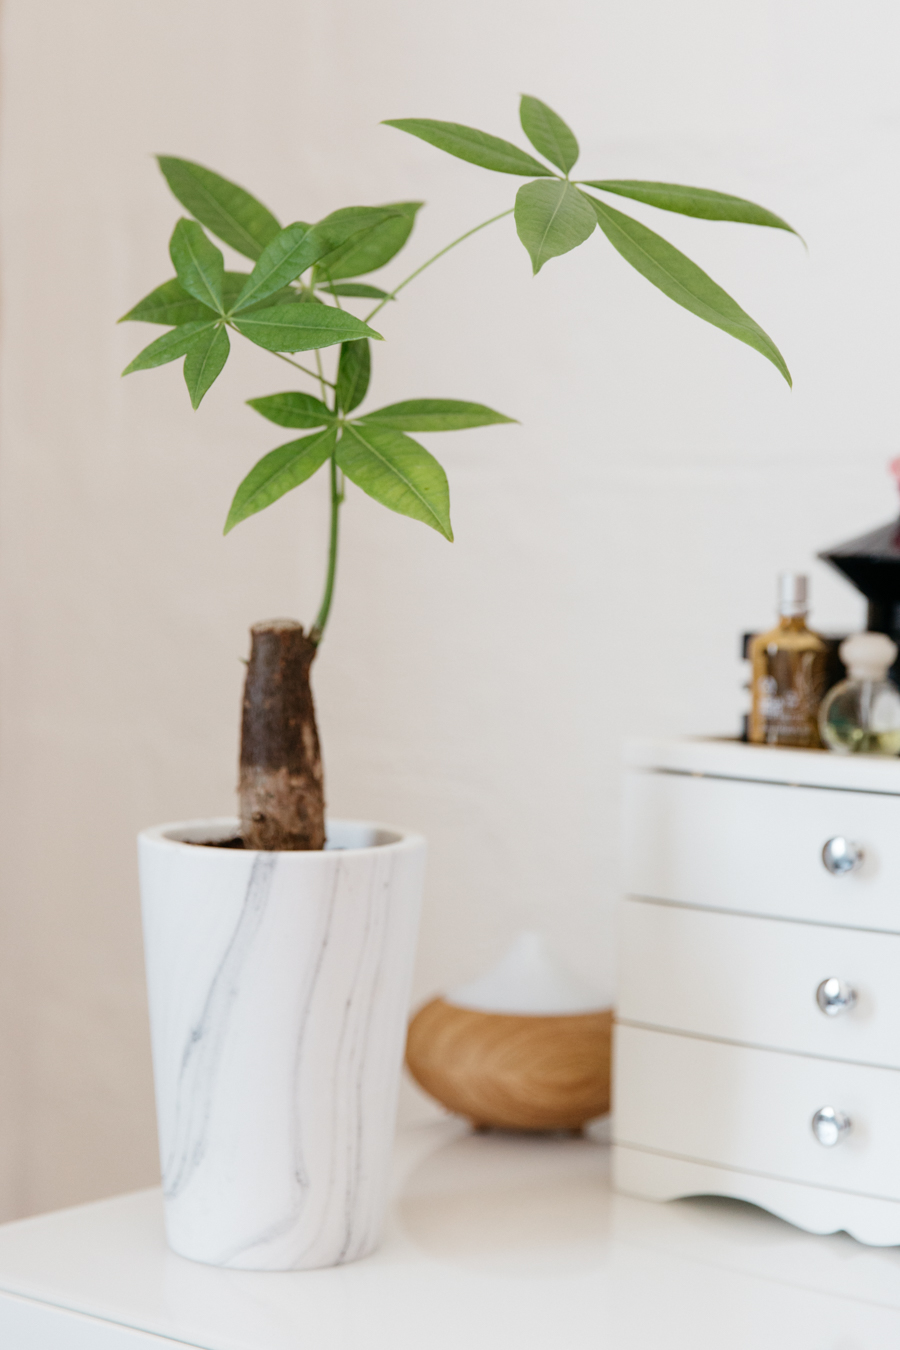 Pachira money tree on dressing table.